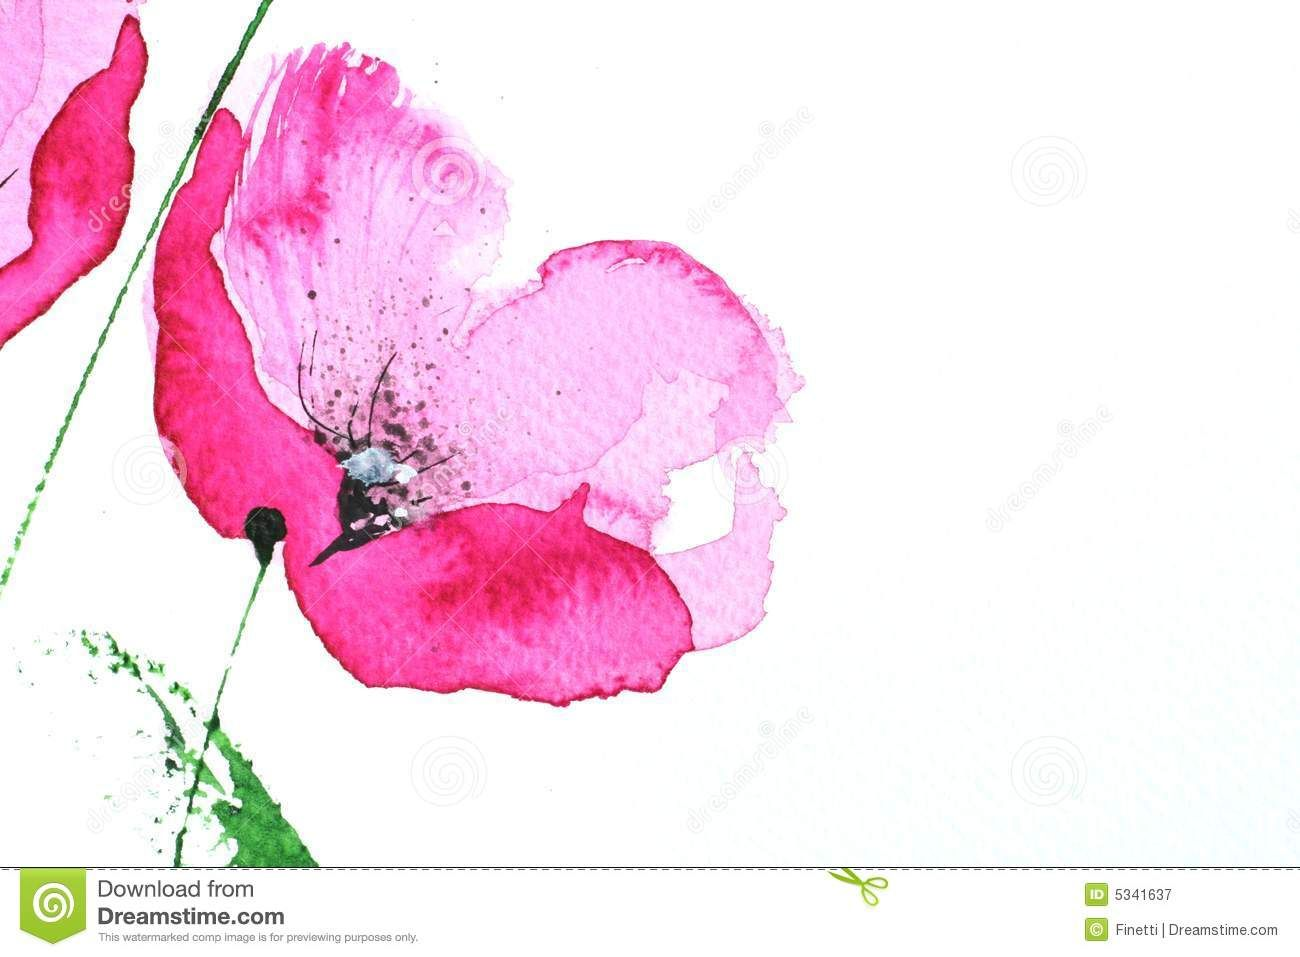 Floral Art Pinterest Watercolour Pink Poppy Flower Royalty Free